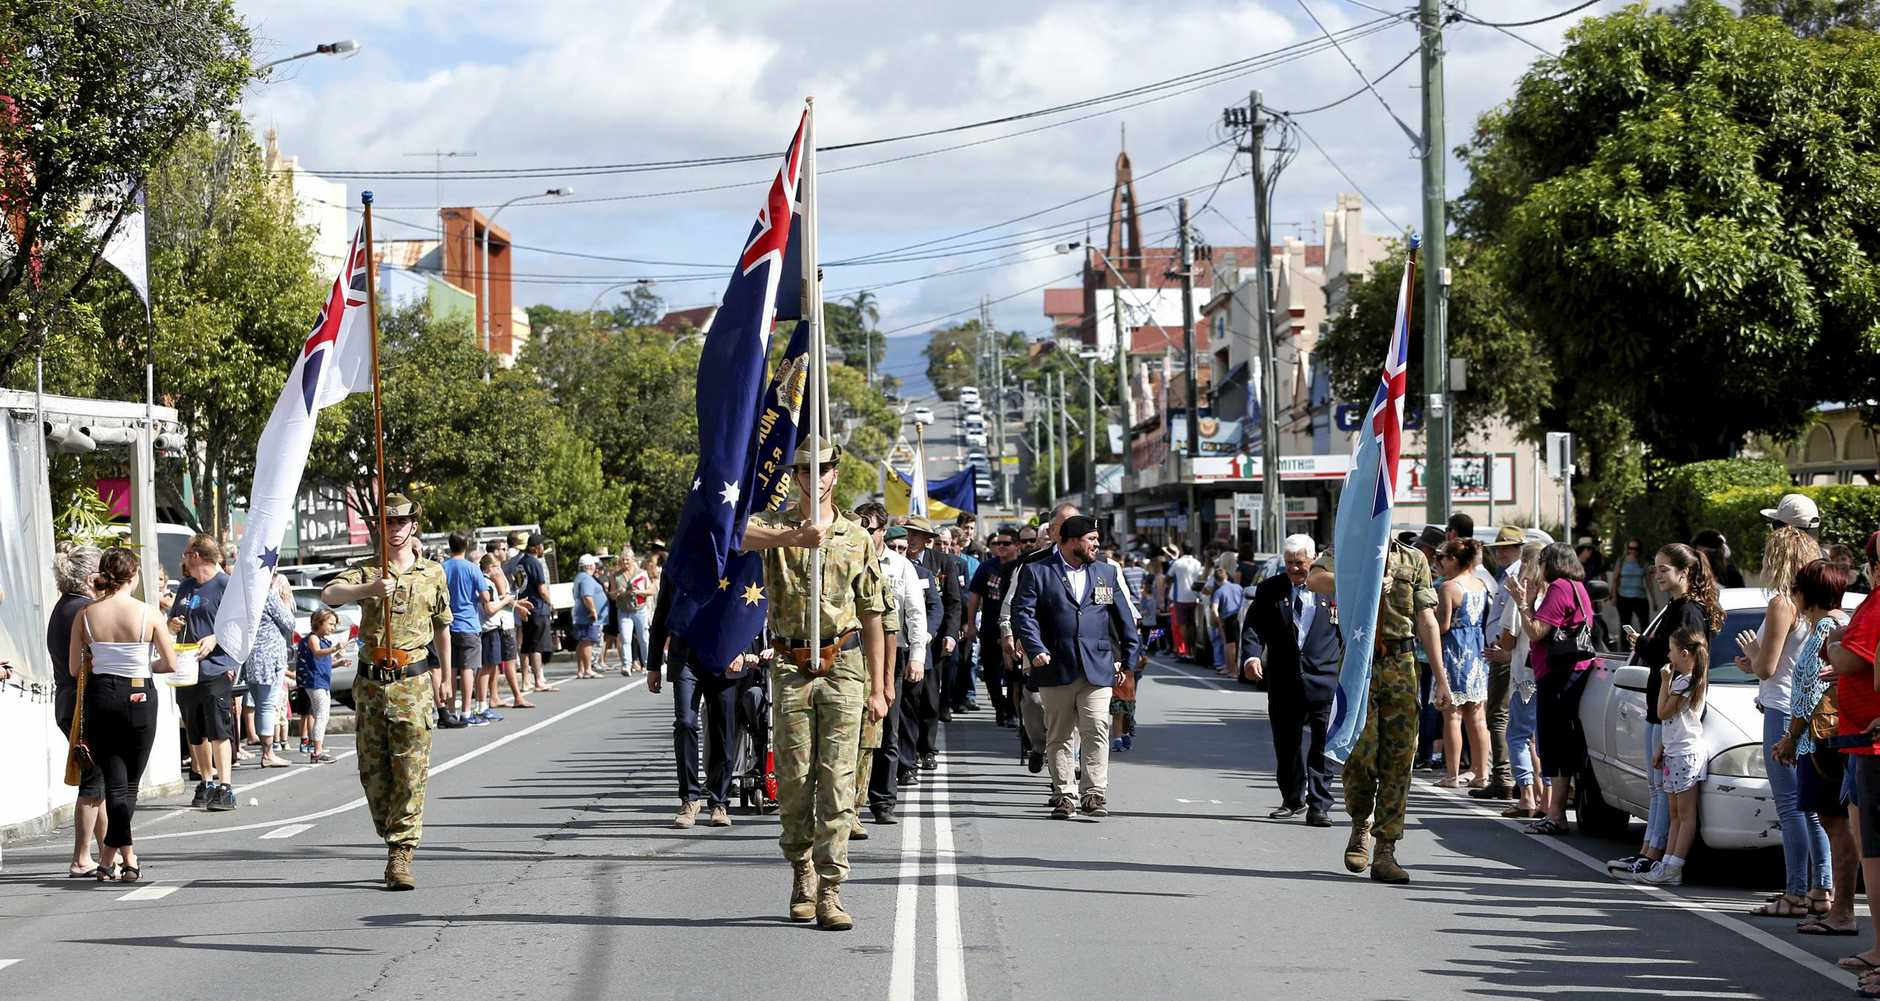 Hundreds lined the streets during the Anzac Day march in Murwillumbah.